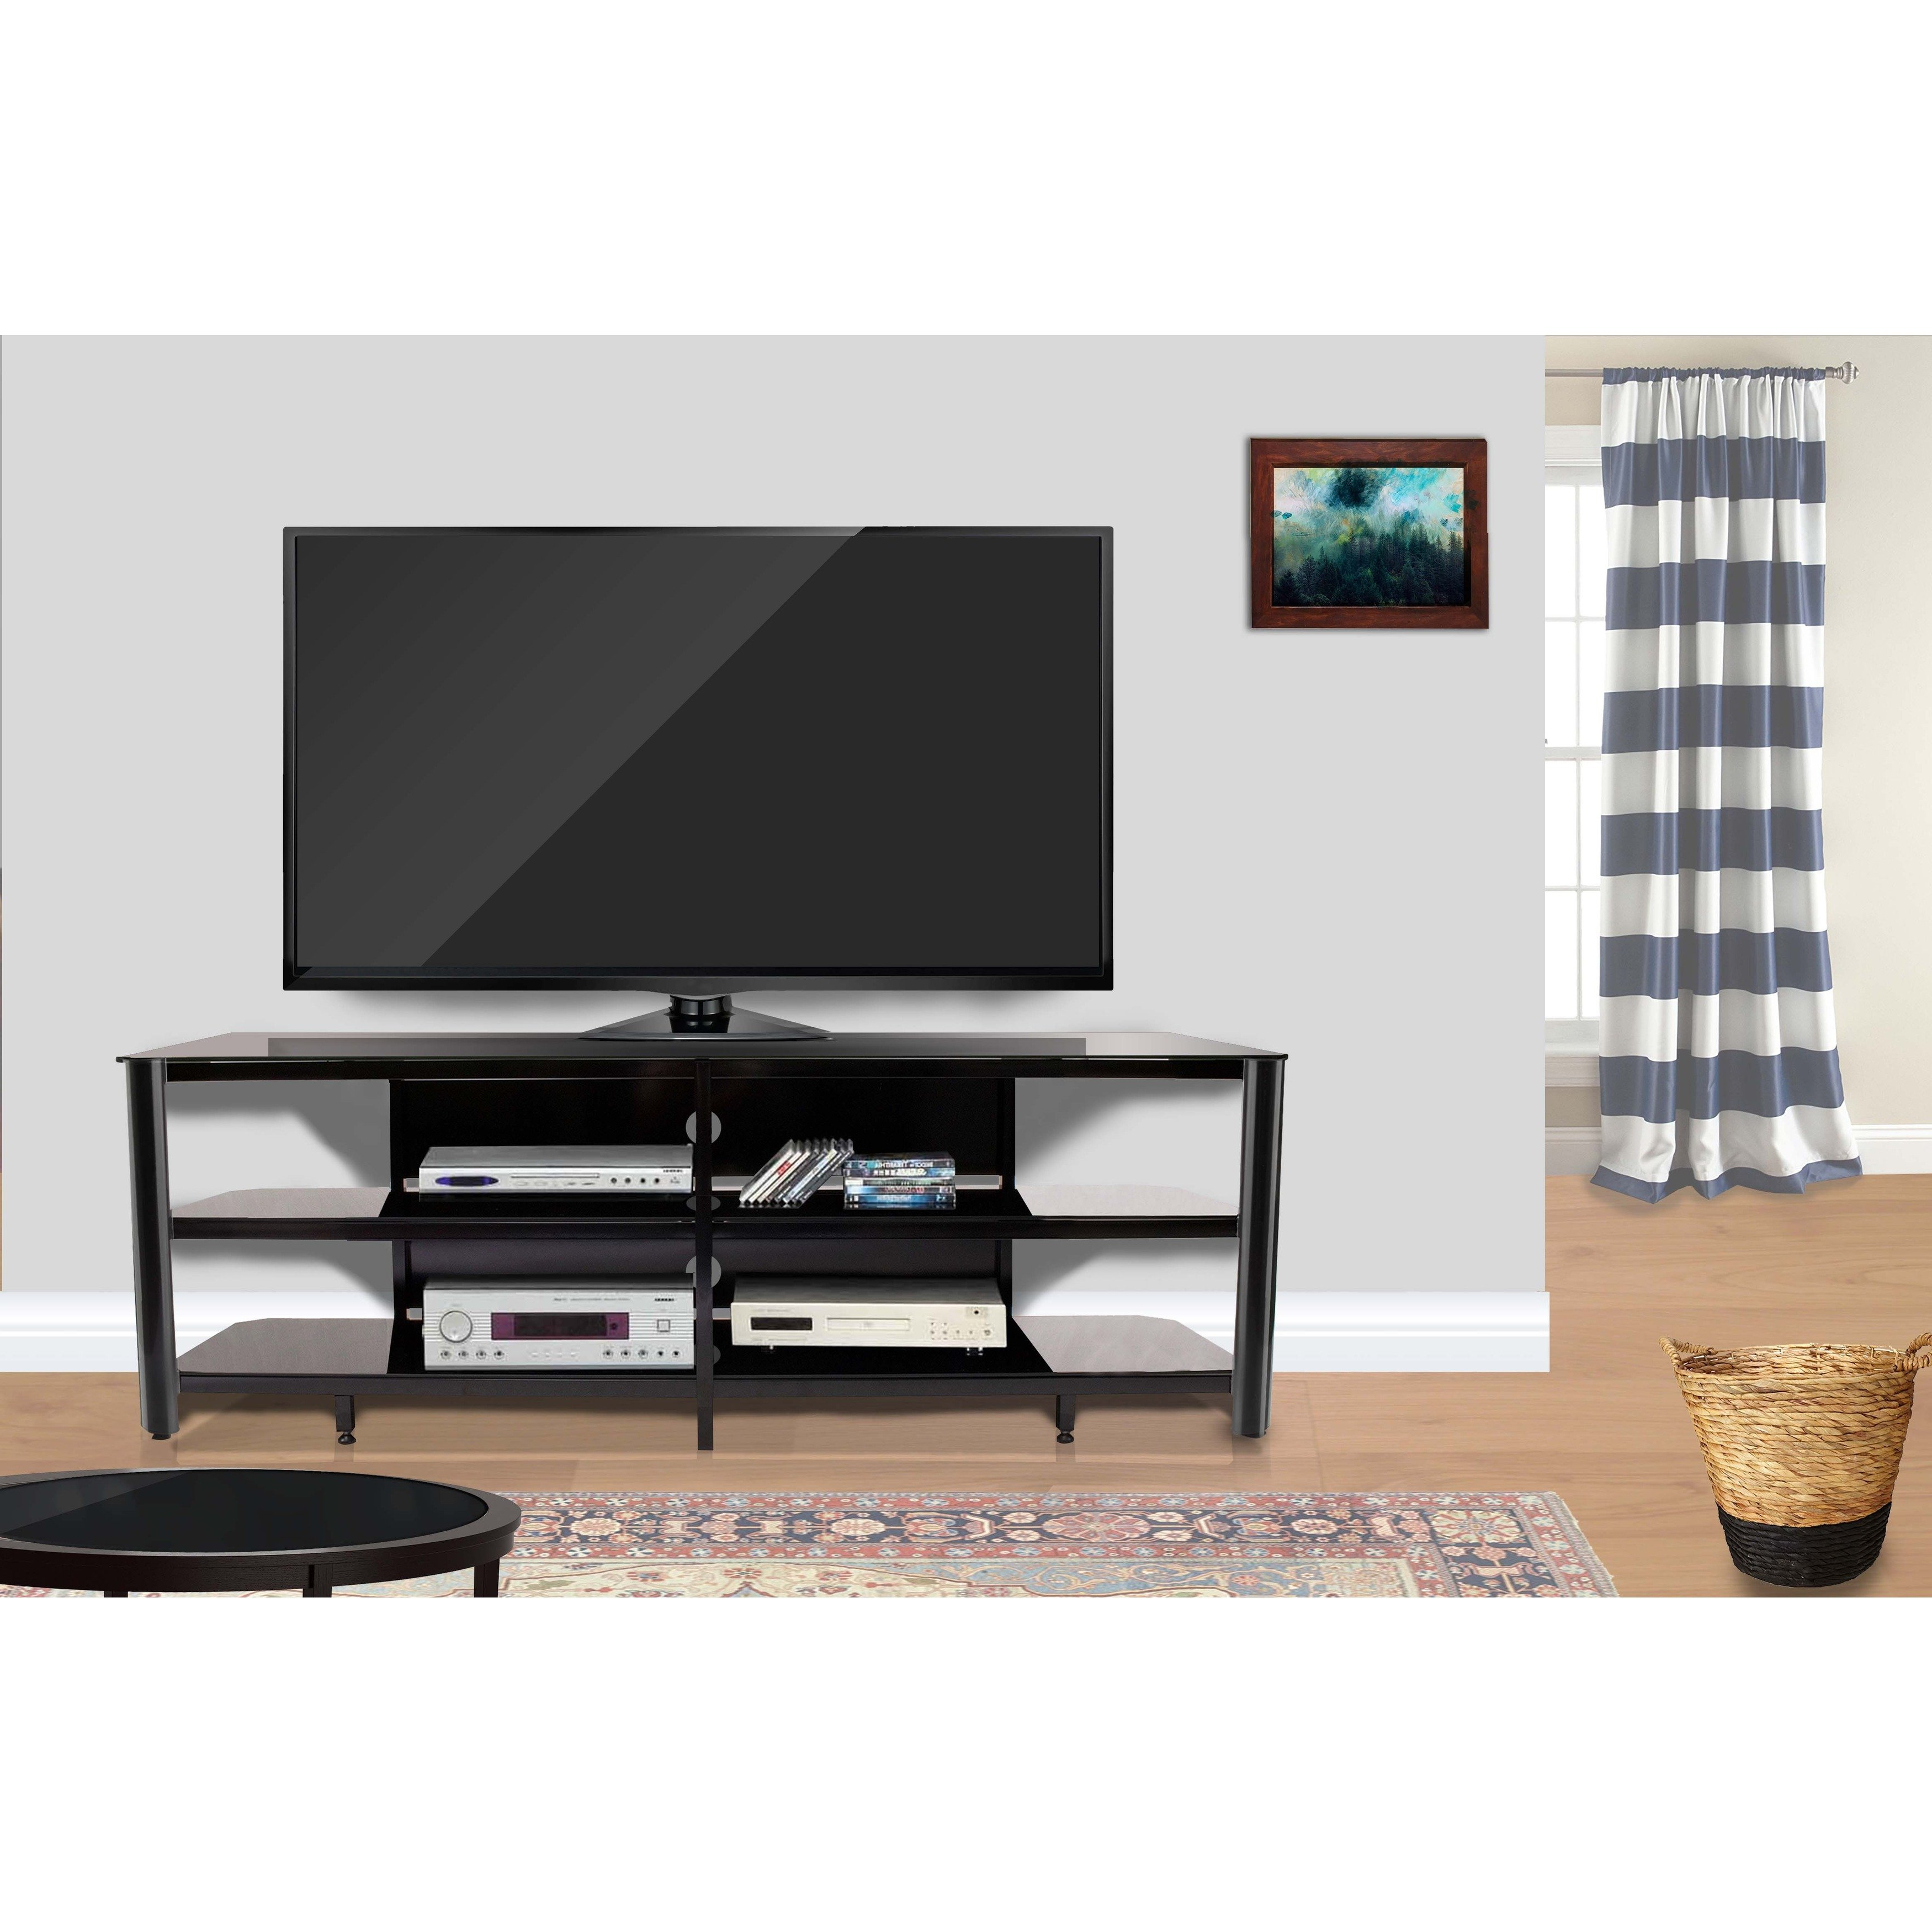 Well Known Oxford 60 Inch Tv Stands Within Shop Fold 'n' Snap Oxford 73 Inch Black Innovex Tv Stand – Free (Gallery 4 of 20)